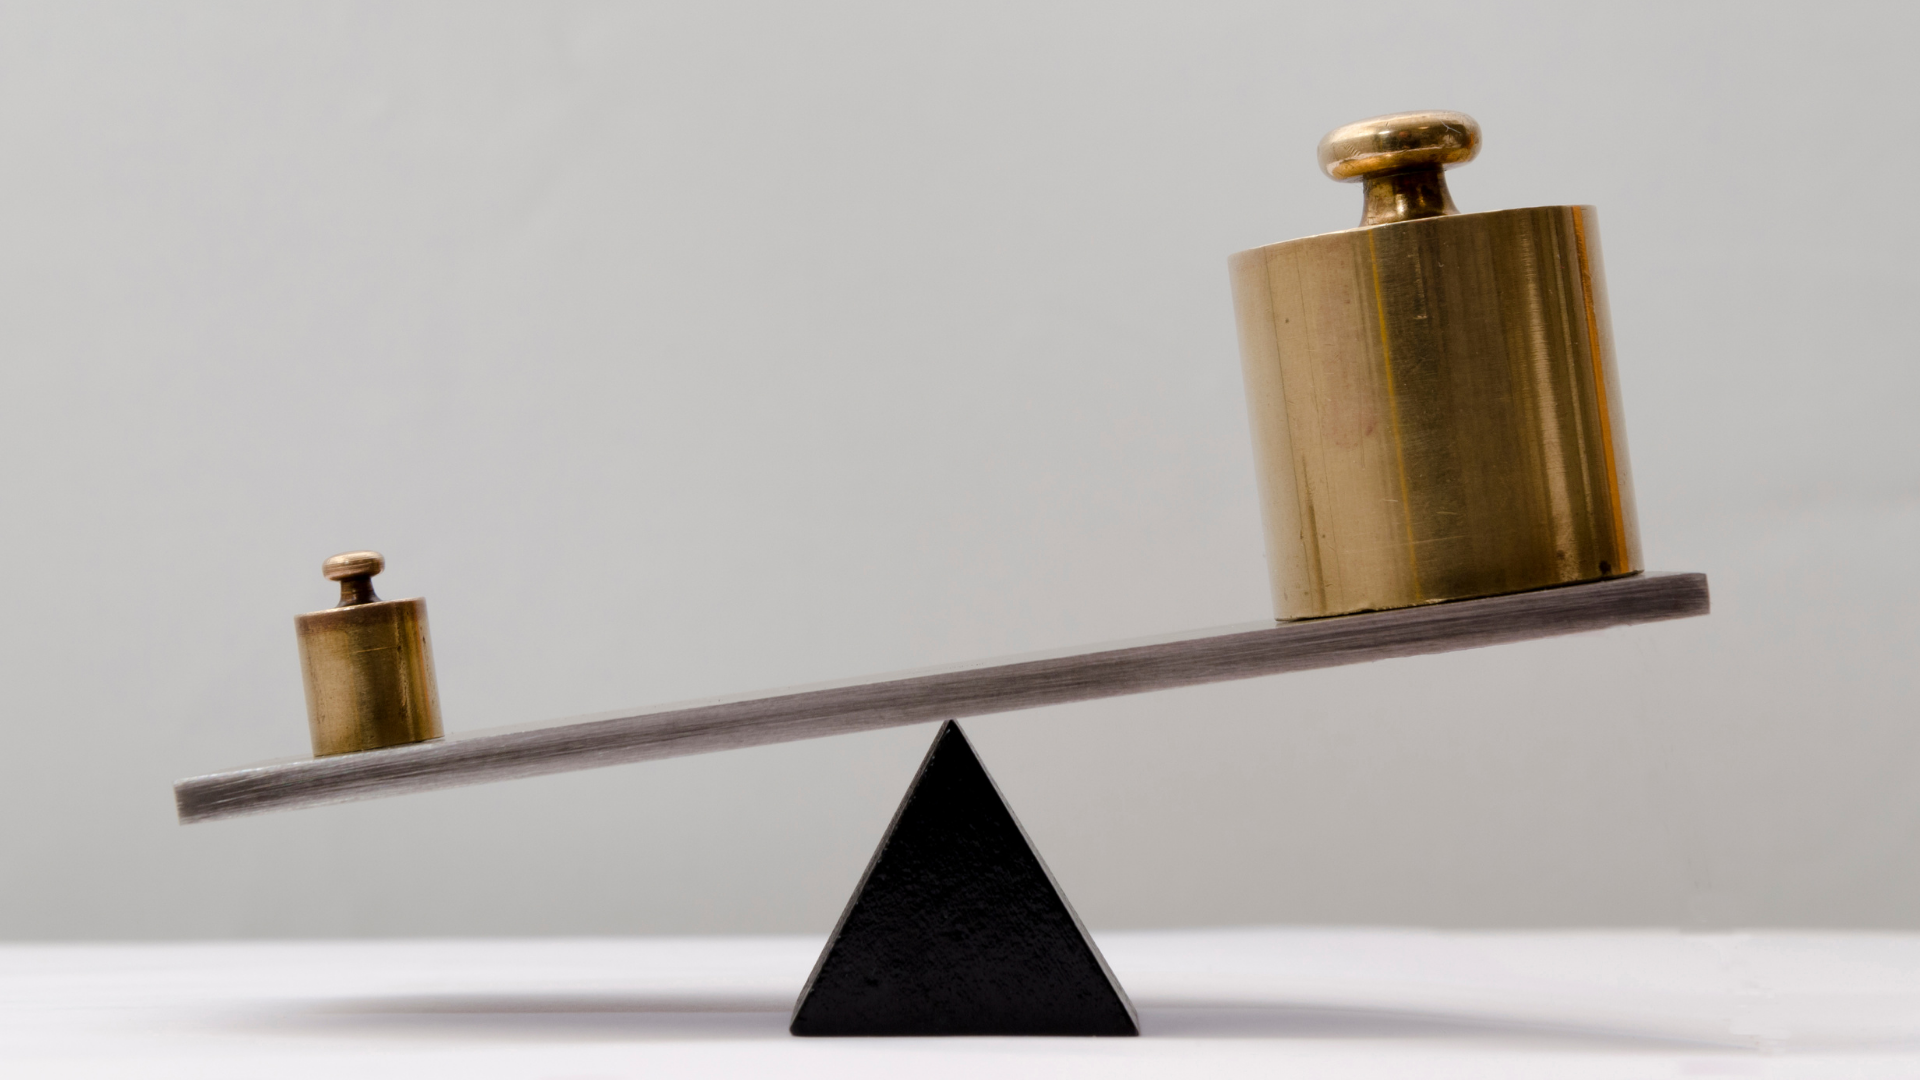 seesaw scales where smaller weight is heavier